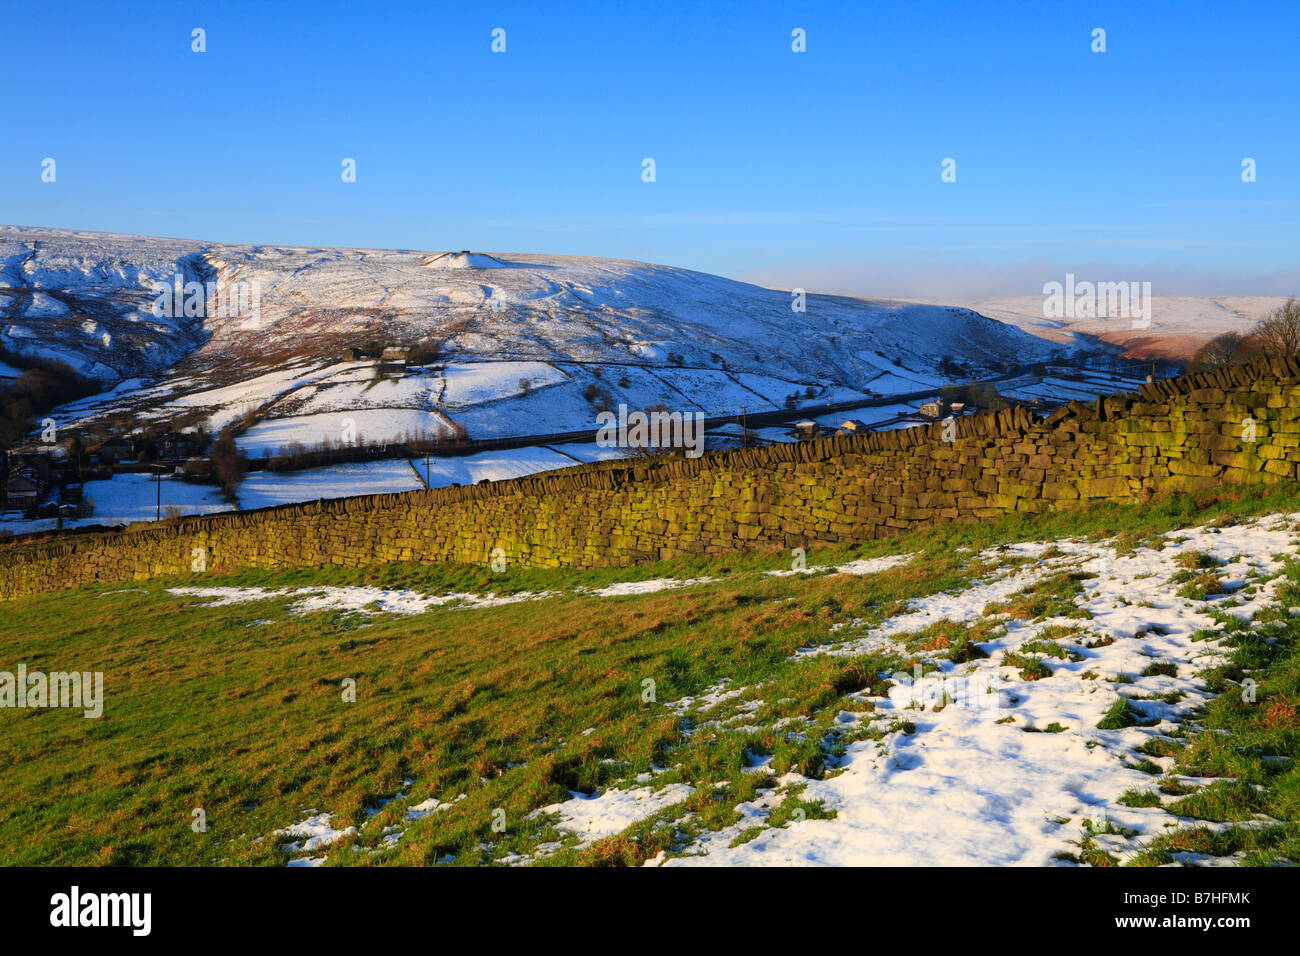 Winter Upper Colne Valley towards Pule Hill, Marsden, West Yorkshire, England, UK. - Stock Image